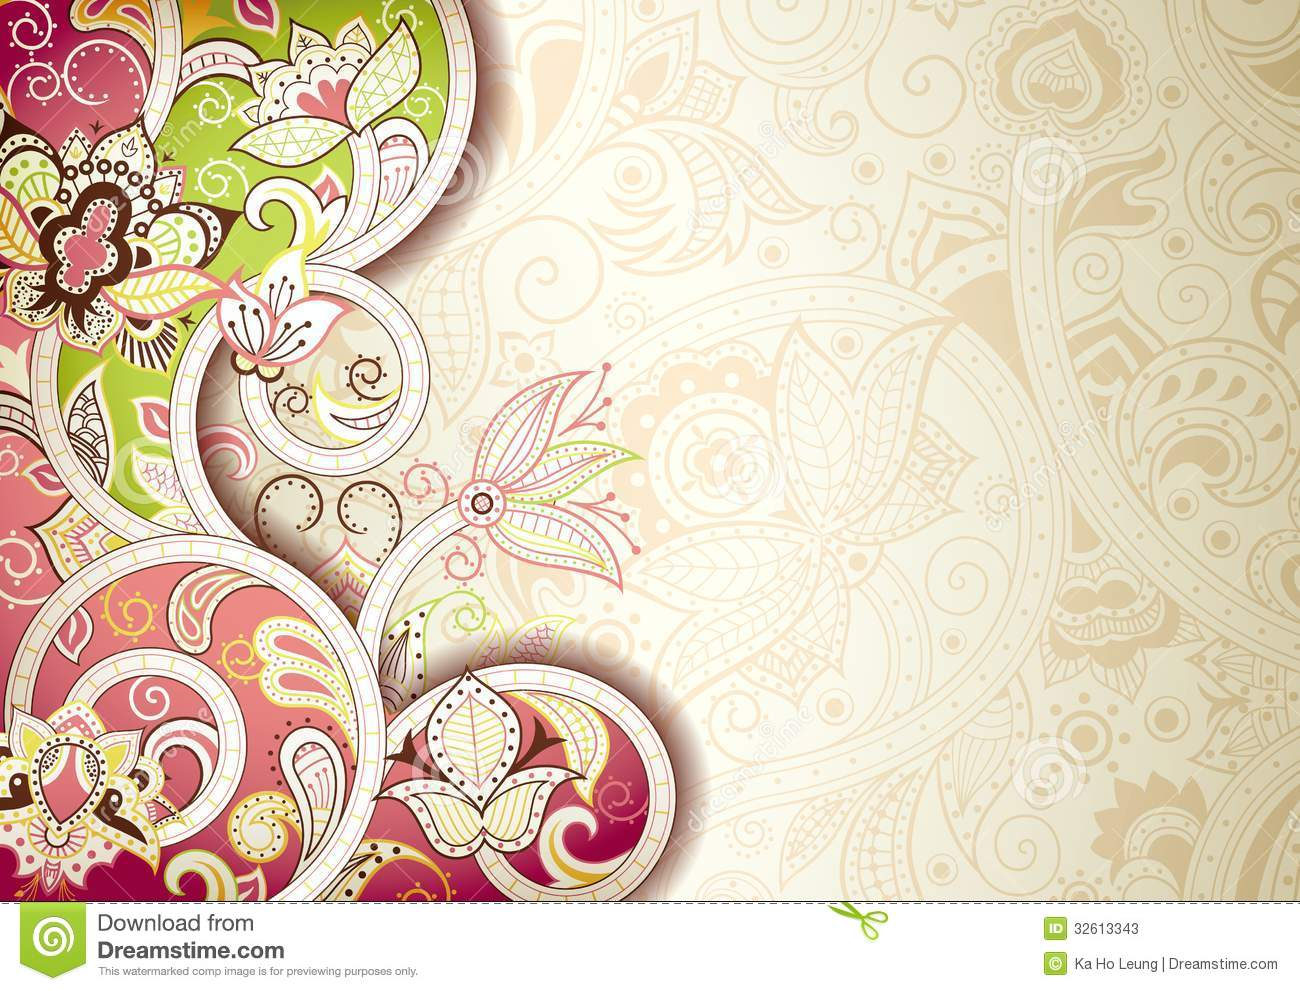 abstract floral background design style - Floral Backgrounds